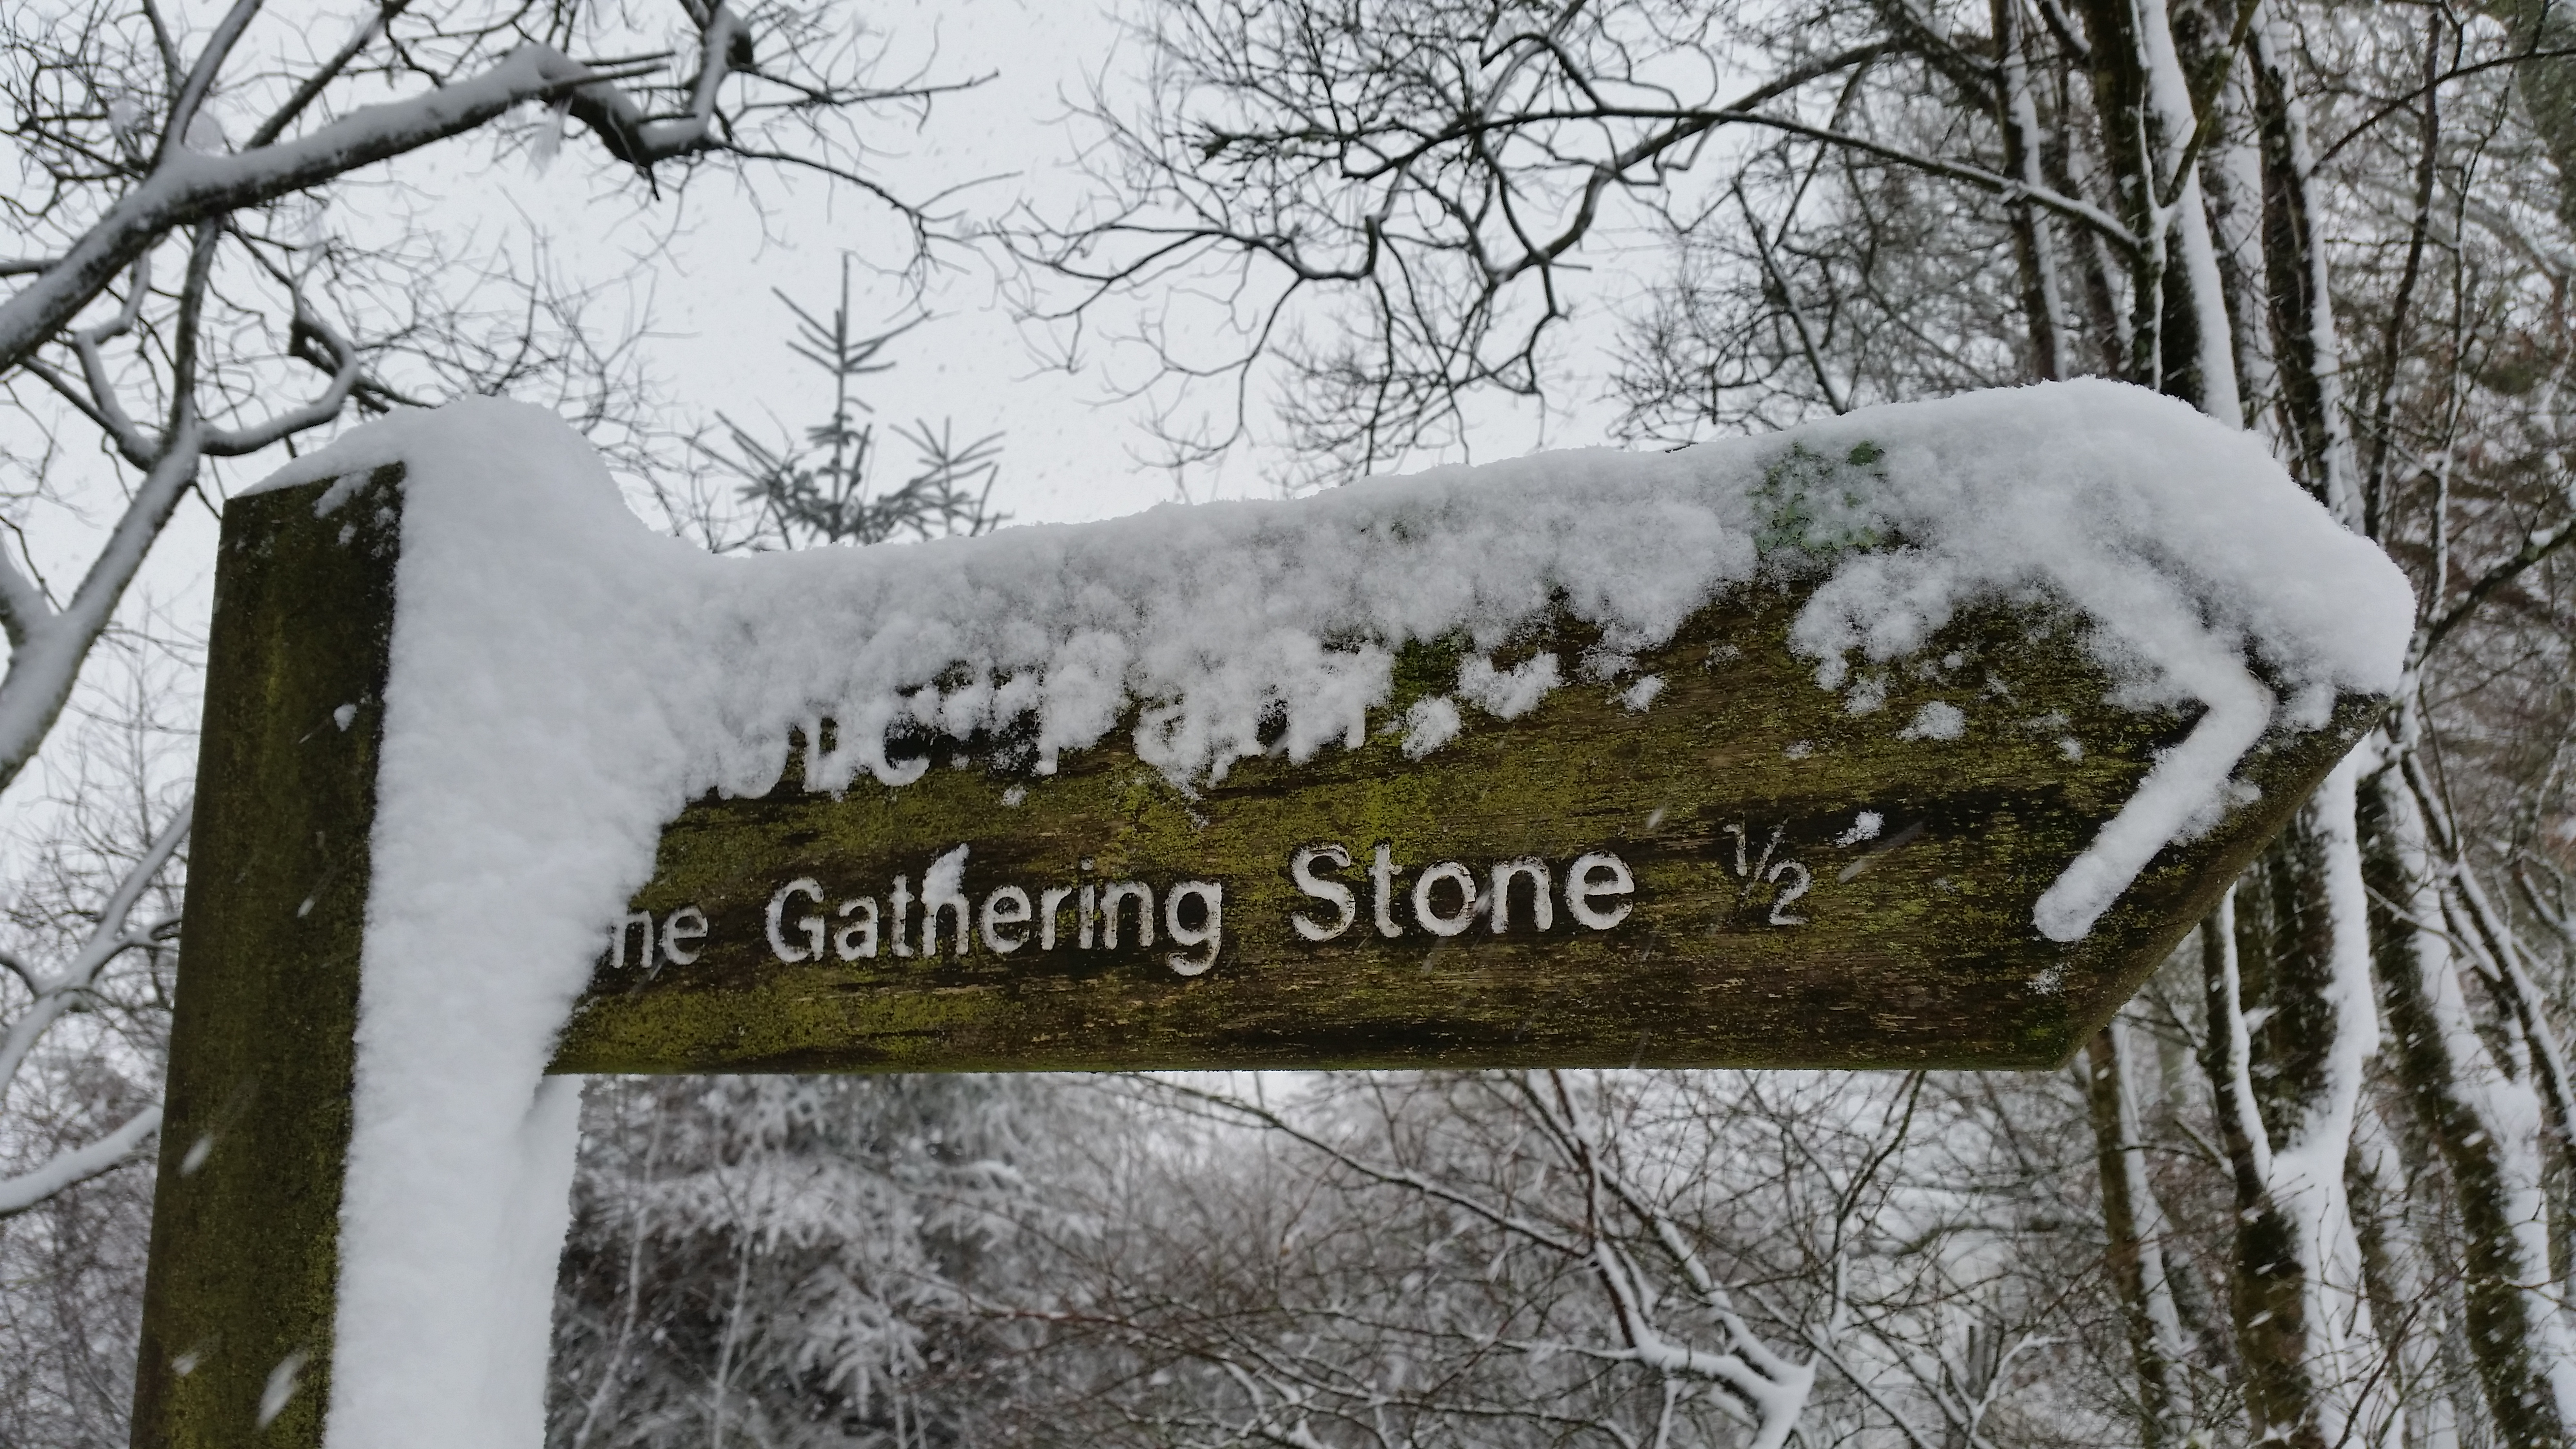 Gatheringstonesign